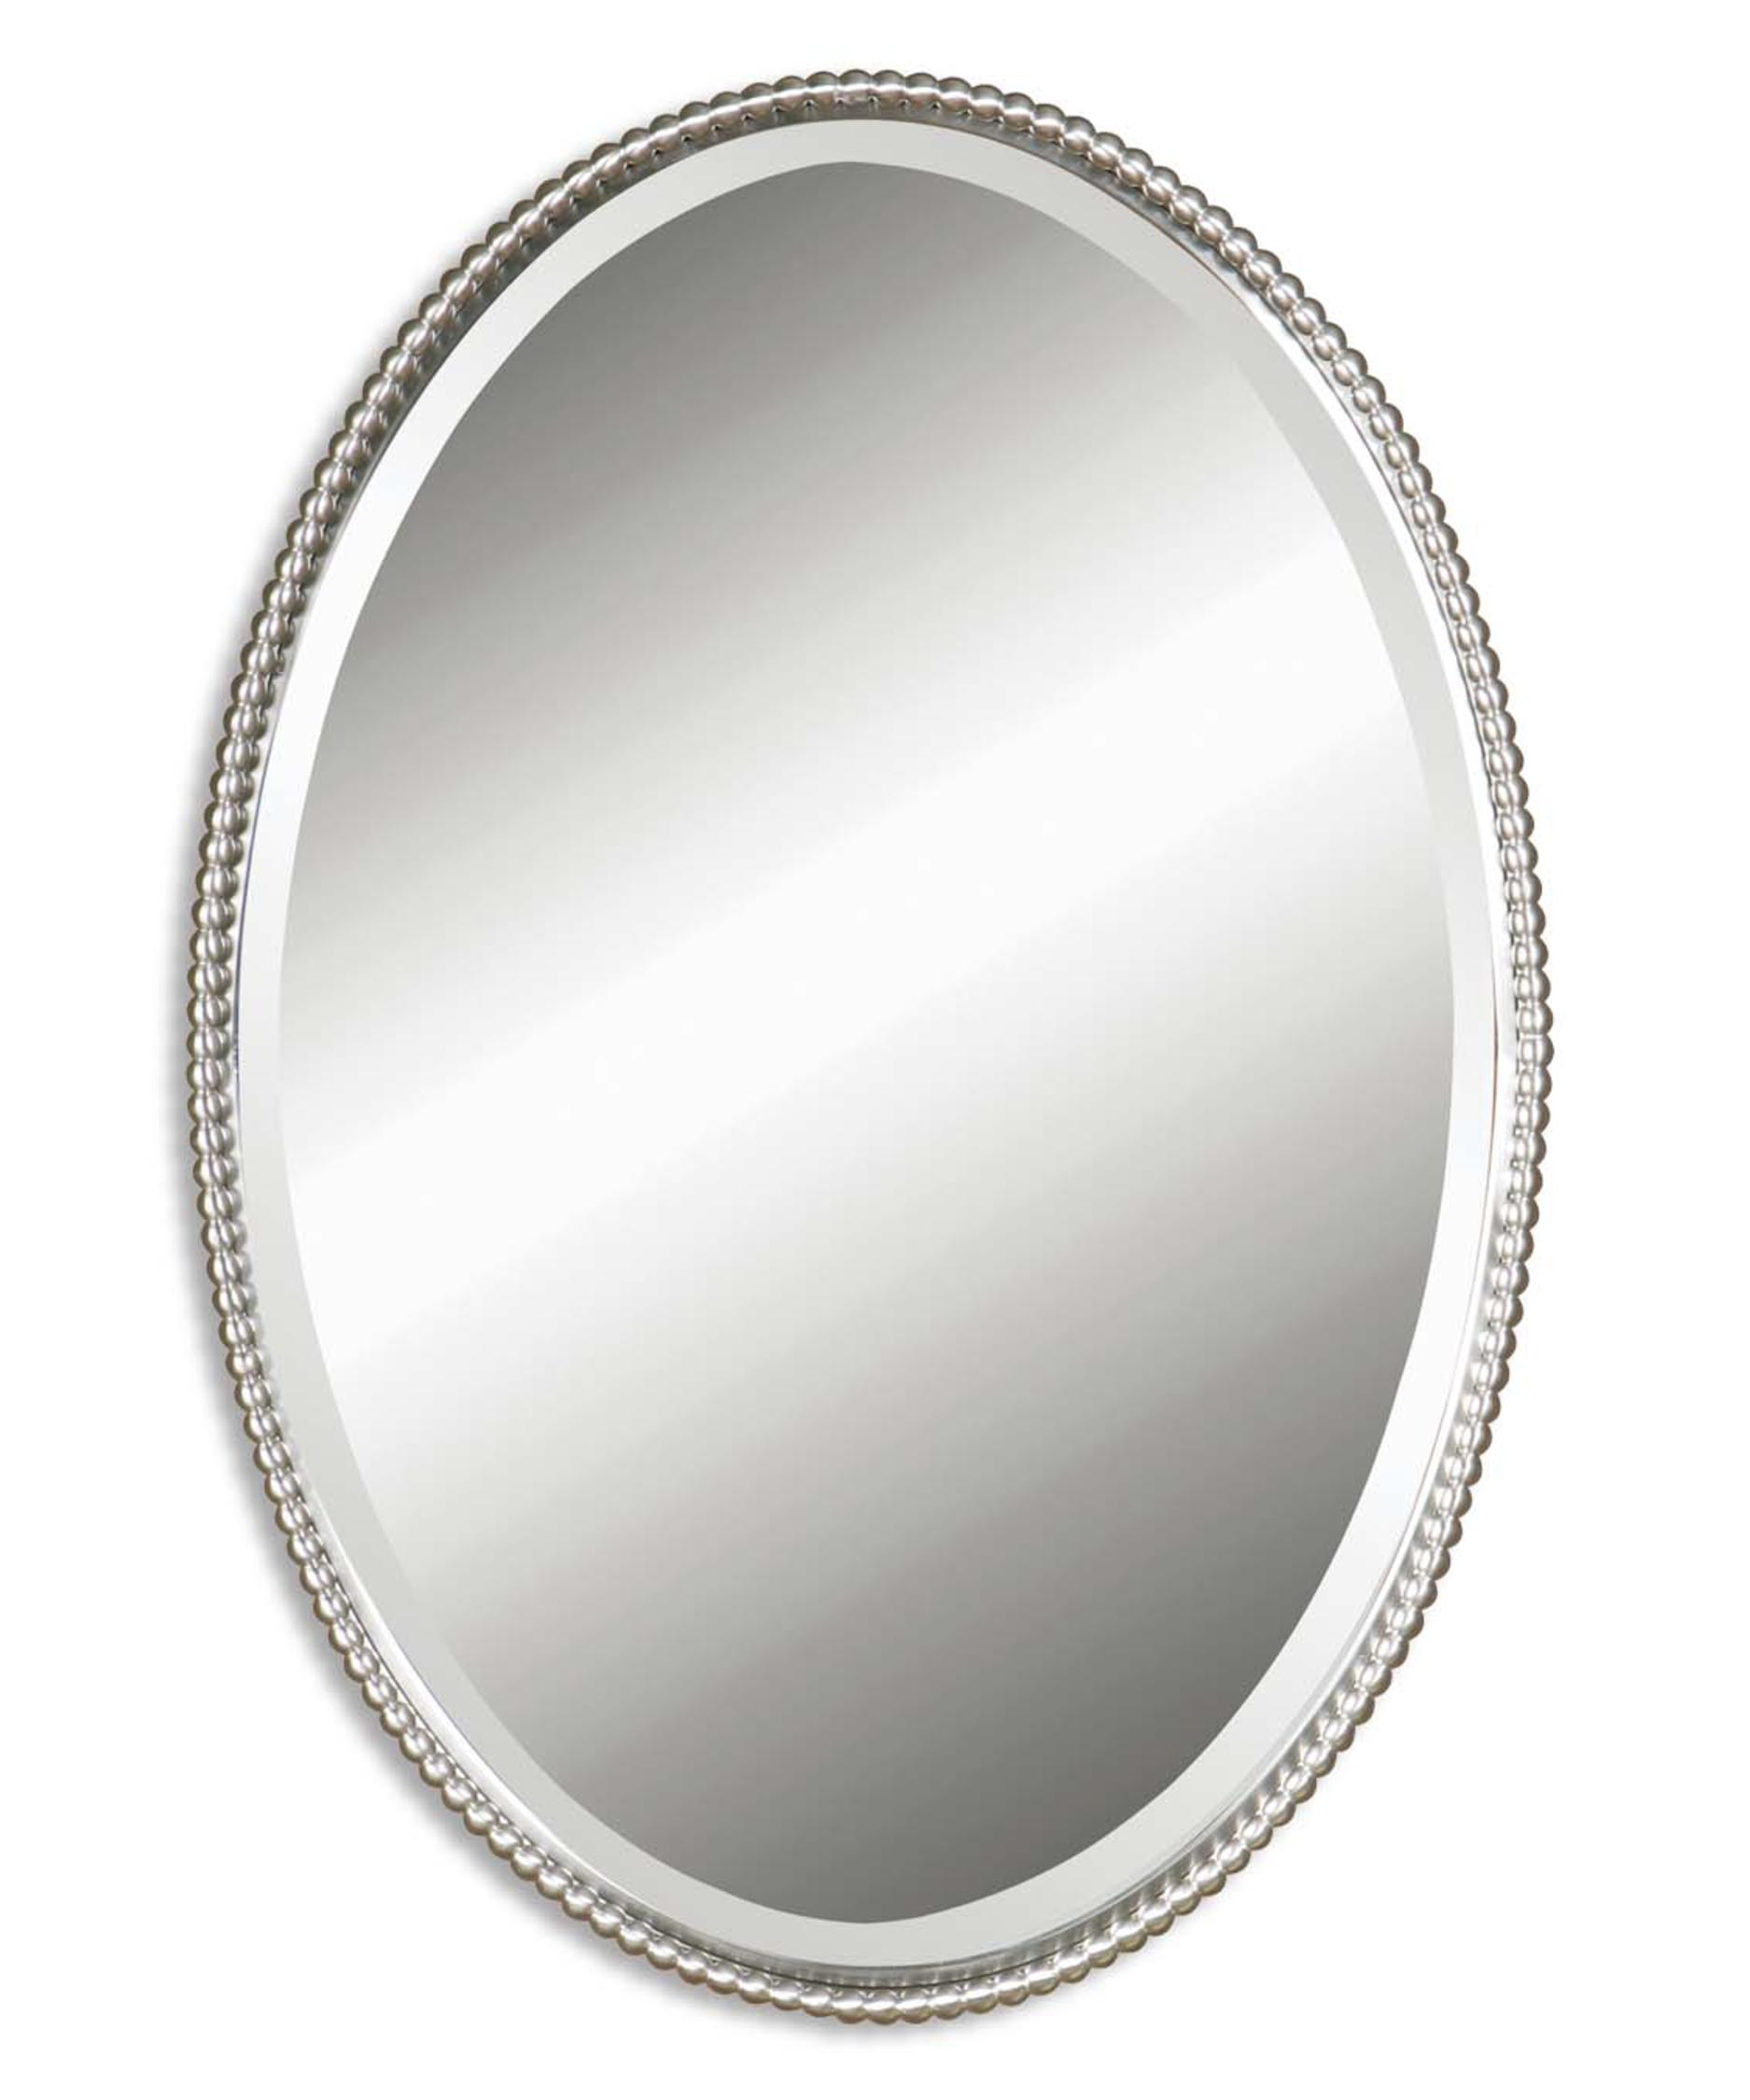 Oval Wall Mirror uttermost 01102b sherise oval wall mirror | capitol lighting 1